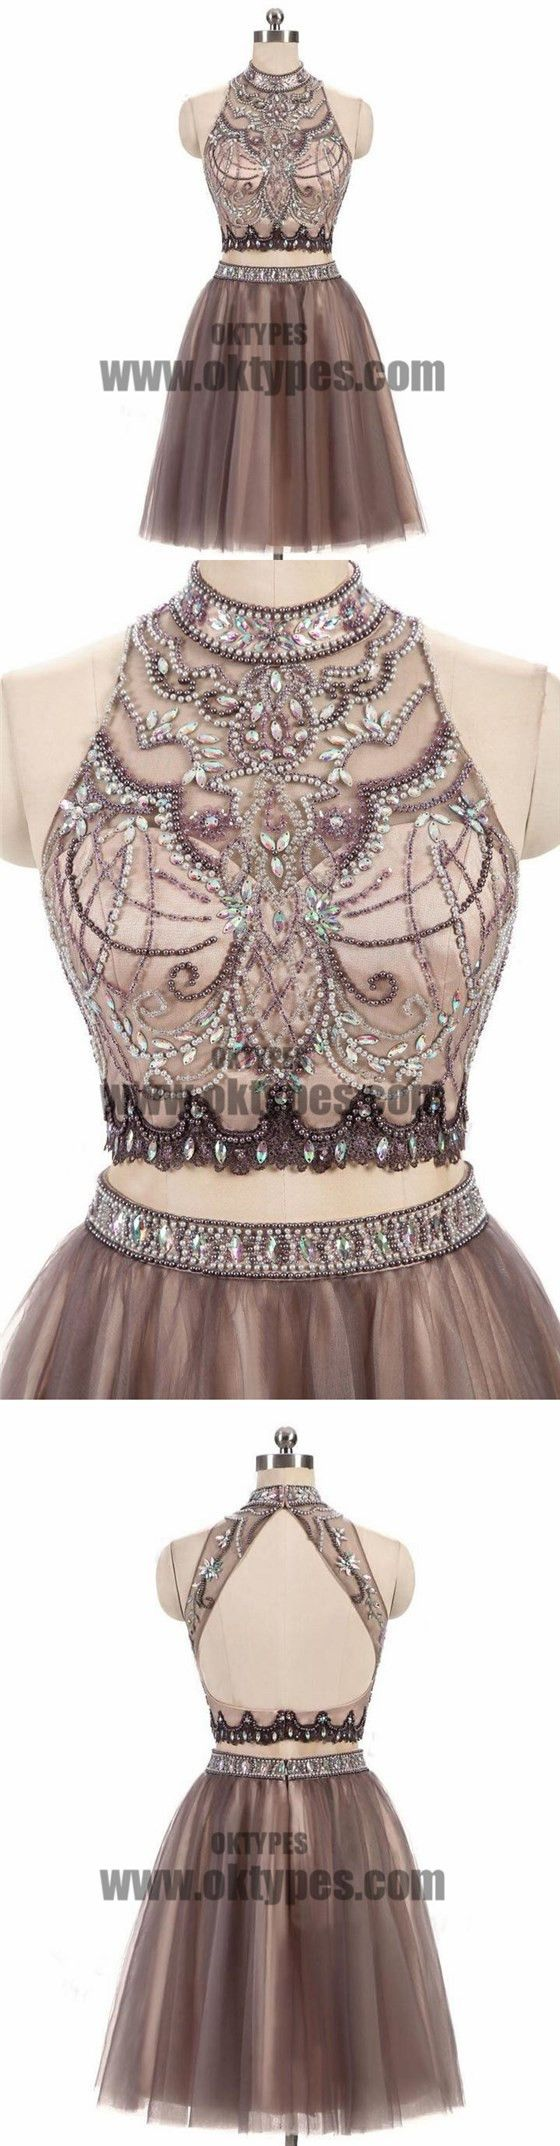 pieces high neck rhinestone beaded tulle homecoming dresses short